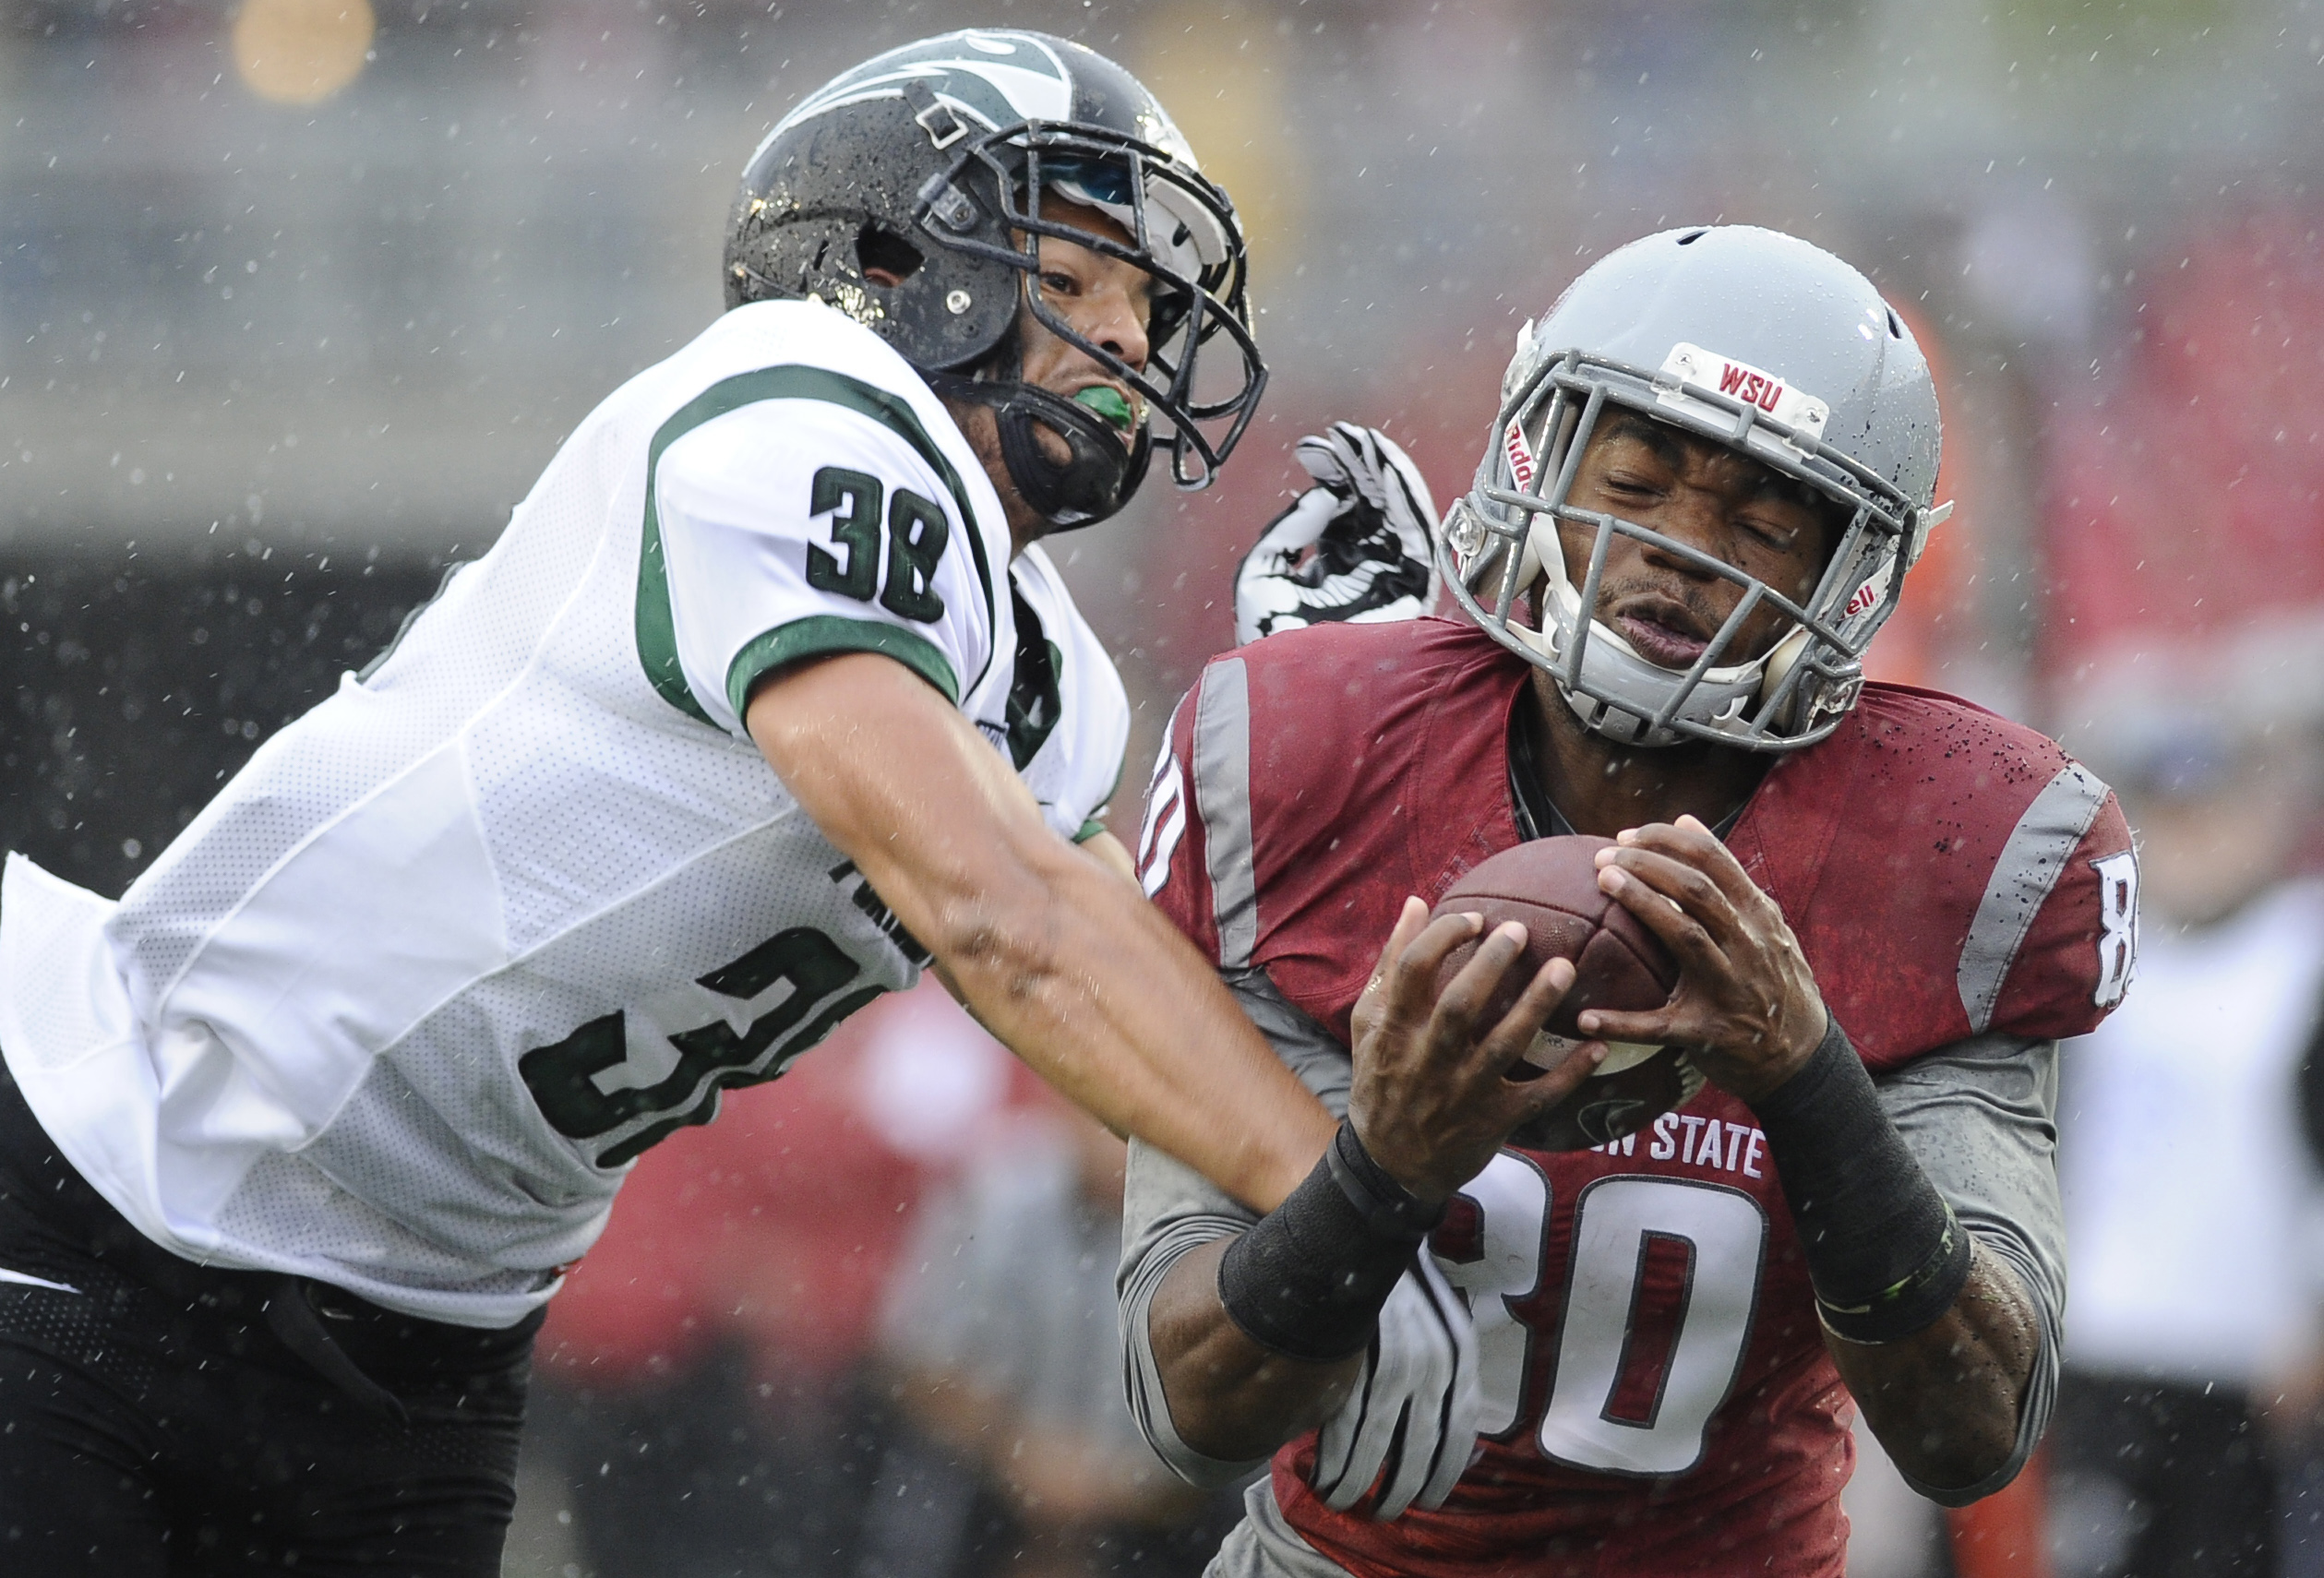 8782501-ncaa-football-portland-state-at-washington-state